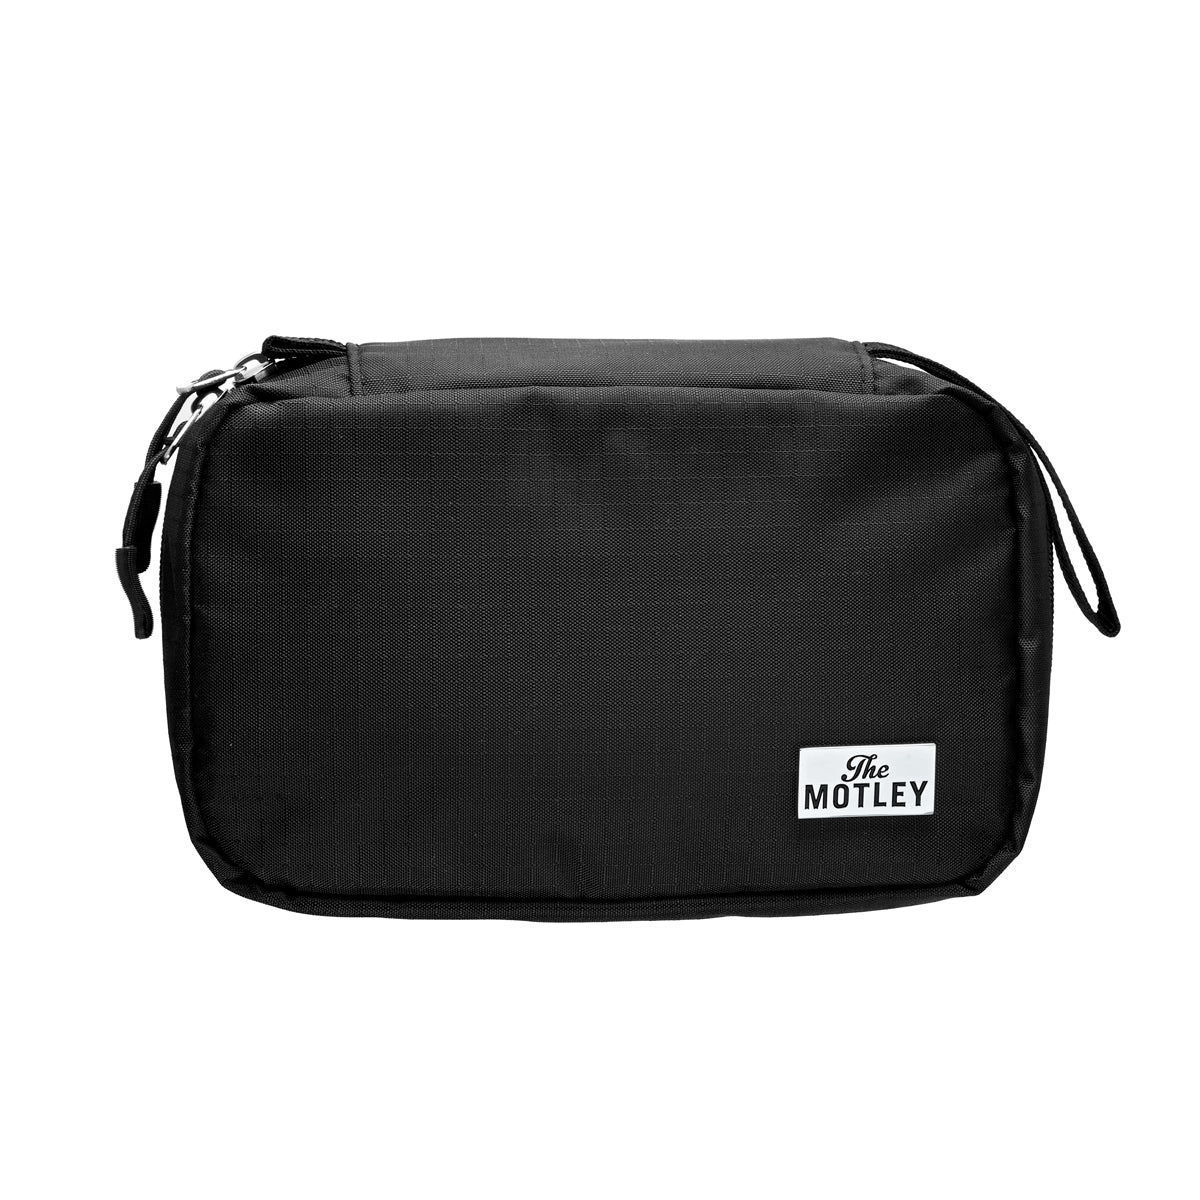 The Motley Waterproof Jetsetter Tri-Fold Travel Dopp Bag - The Motley